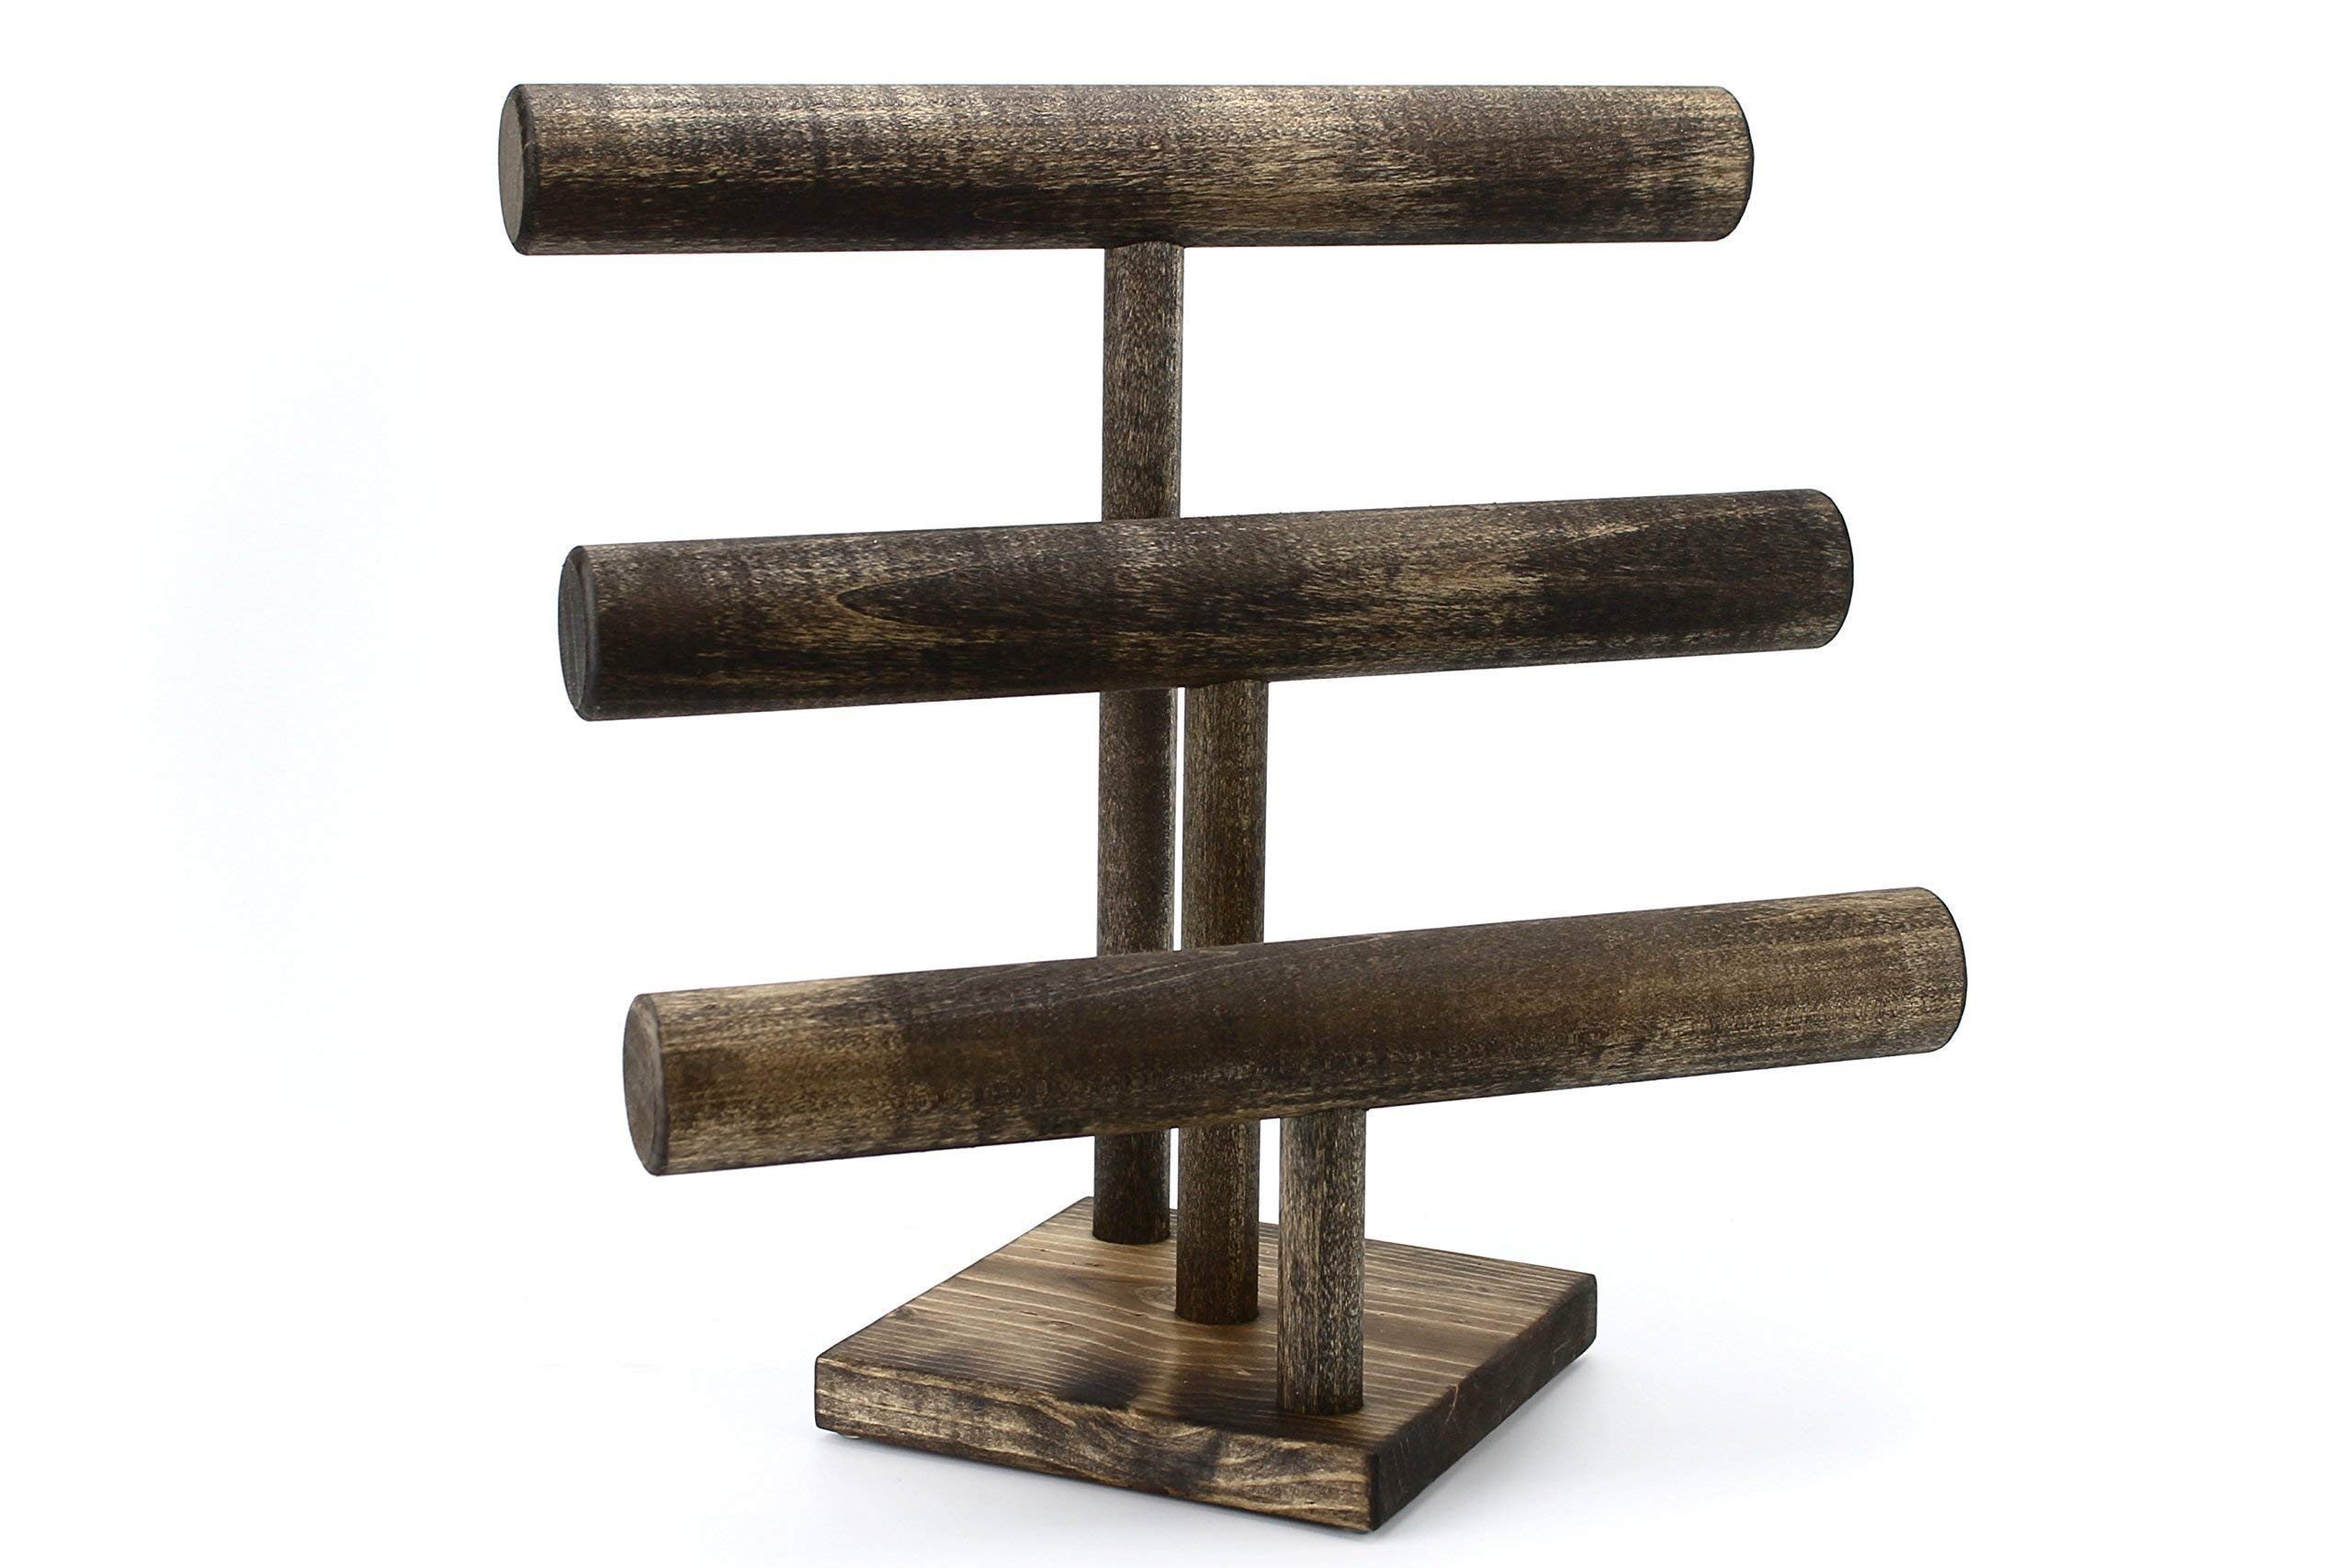 Jewelry Display Stand - Three Tier, Handmade in USA, 12 in Wide Bracelet Watch Stand, Solid Wood T-Bar Display, Craft Show, Boutique Rustic Rack, 3 Tier 12 in Espresso Color